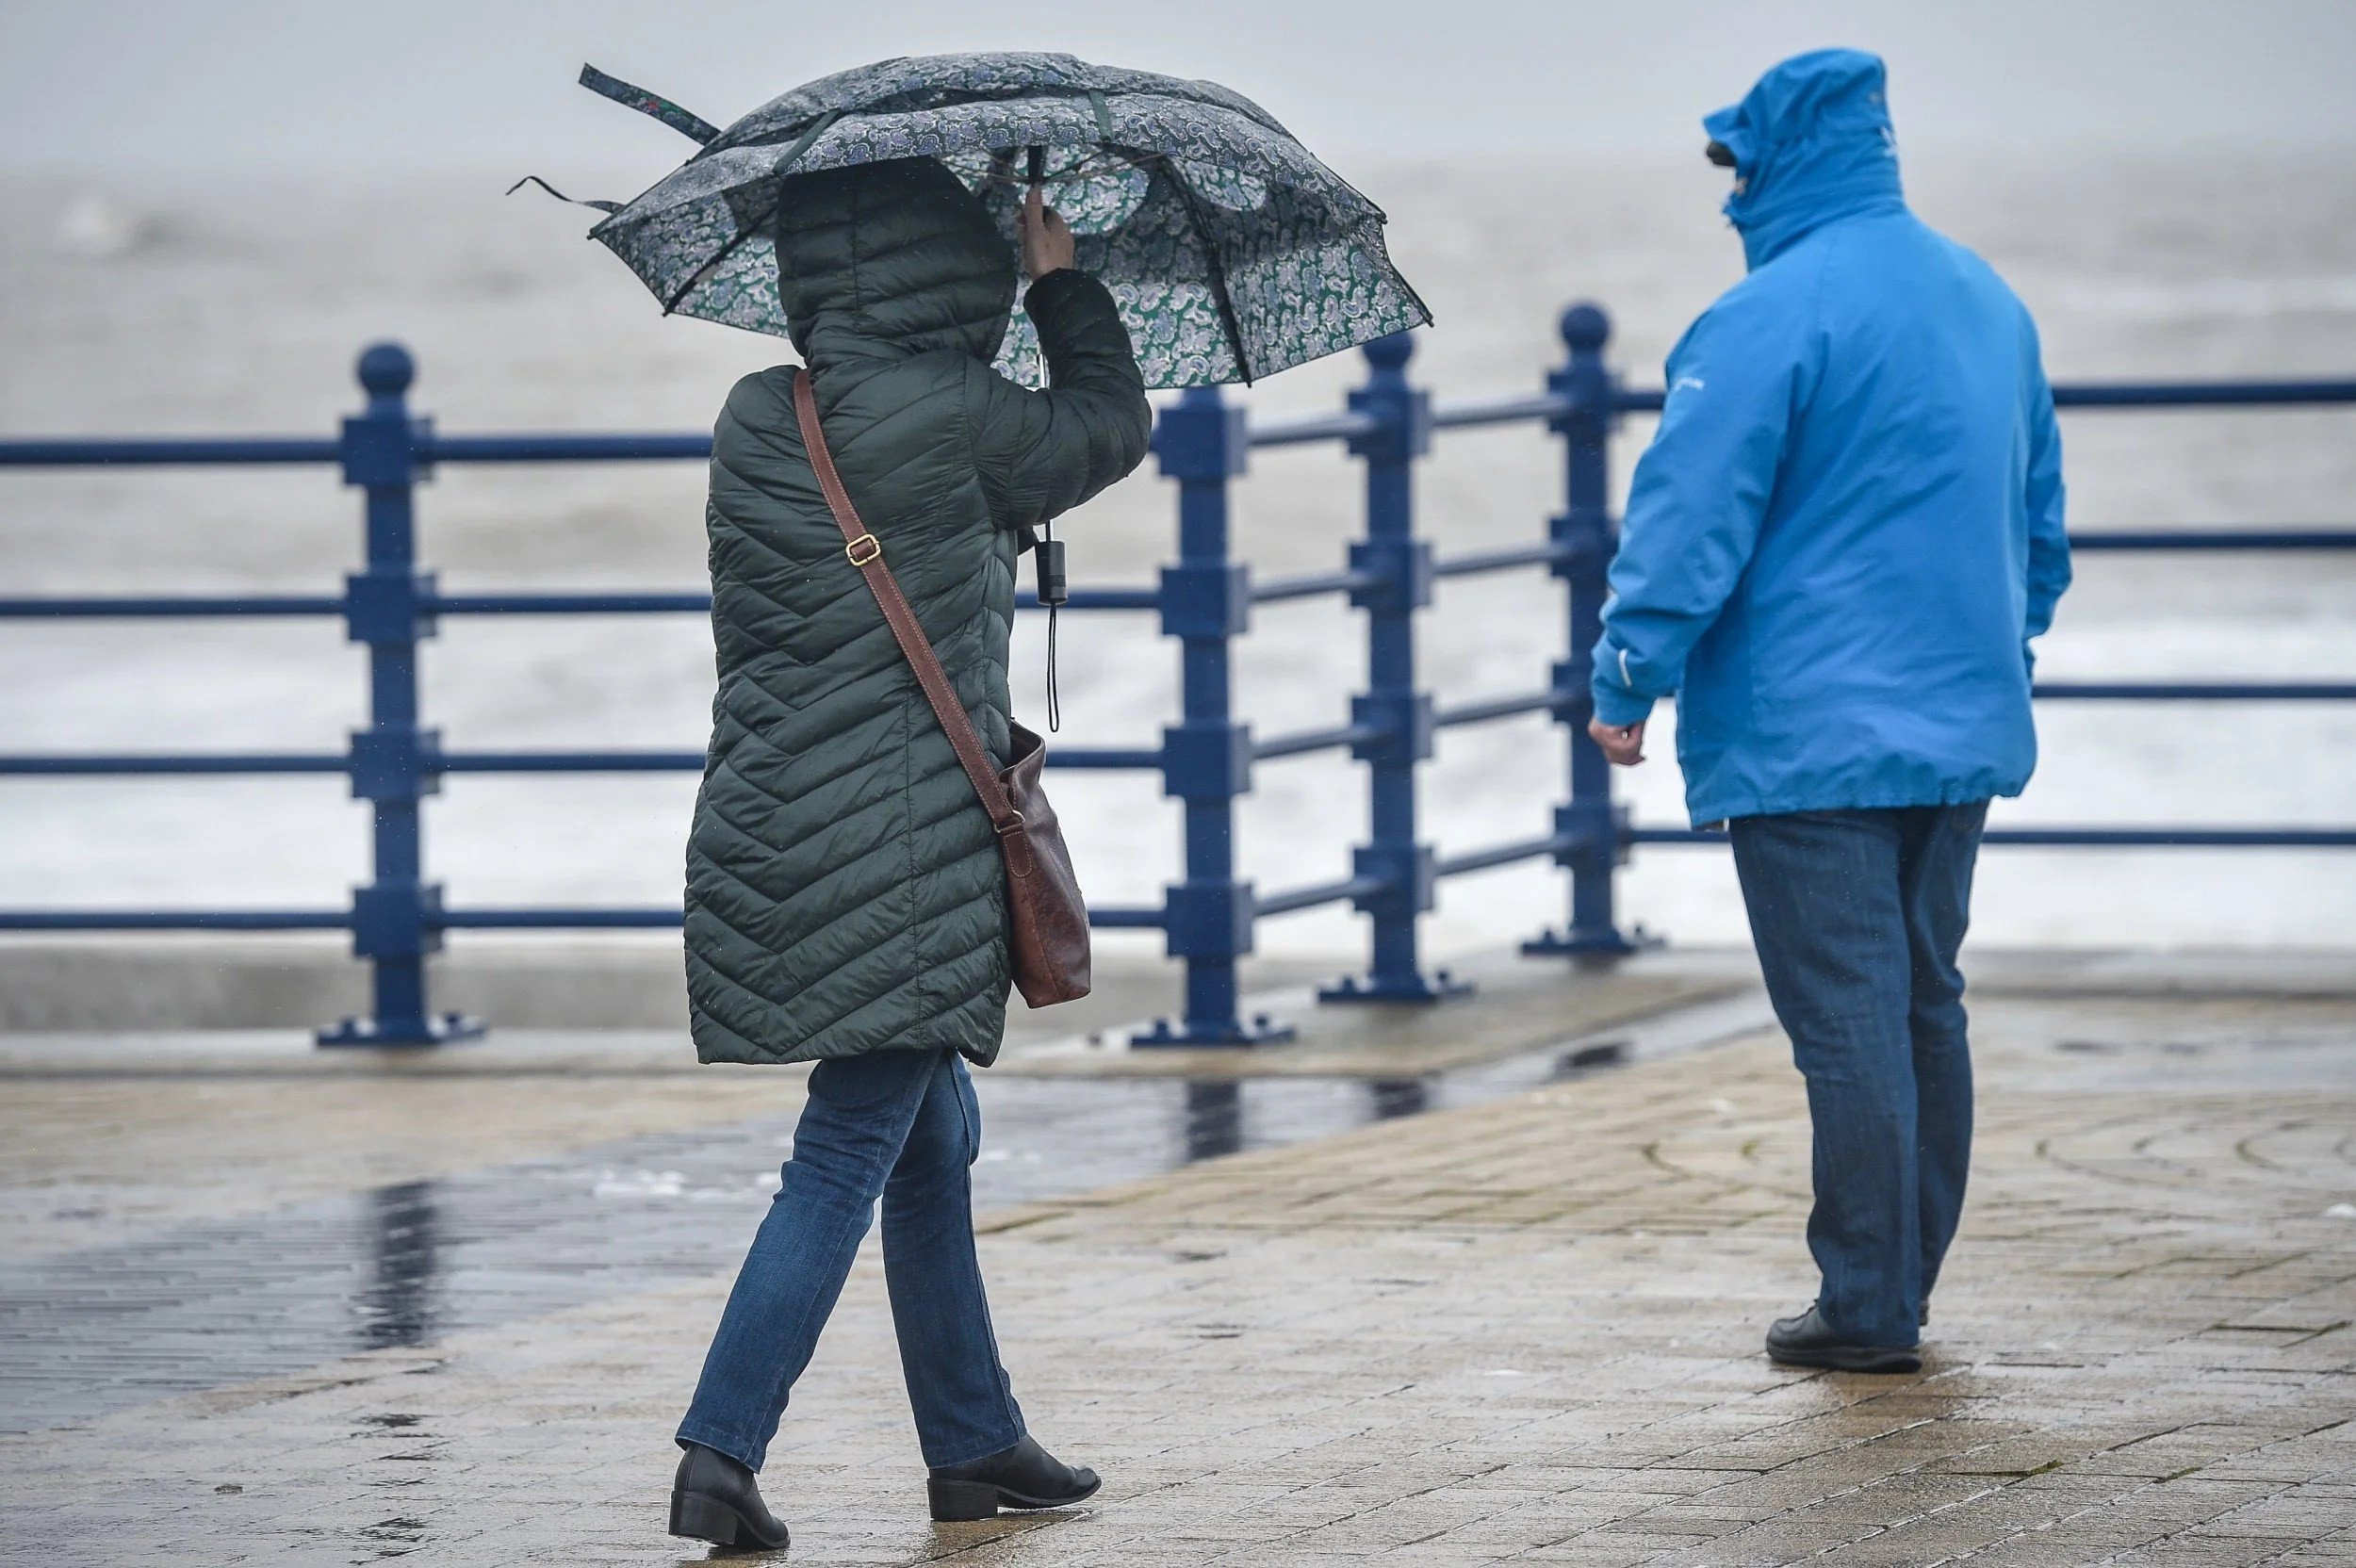 stormhannahsnow1403 UK weather forecast: 'Hannah' to become second storm to hit Britain in a week with 30cm of snow set to fall